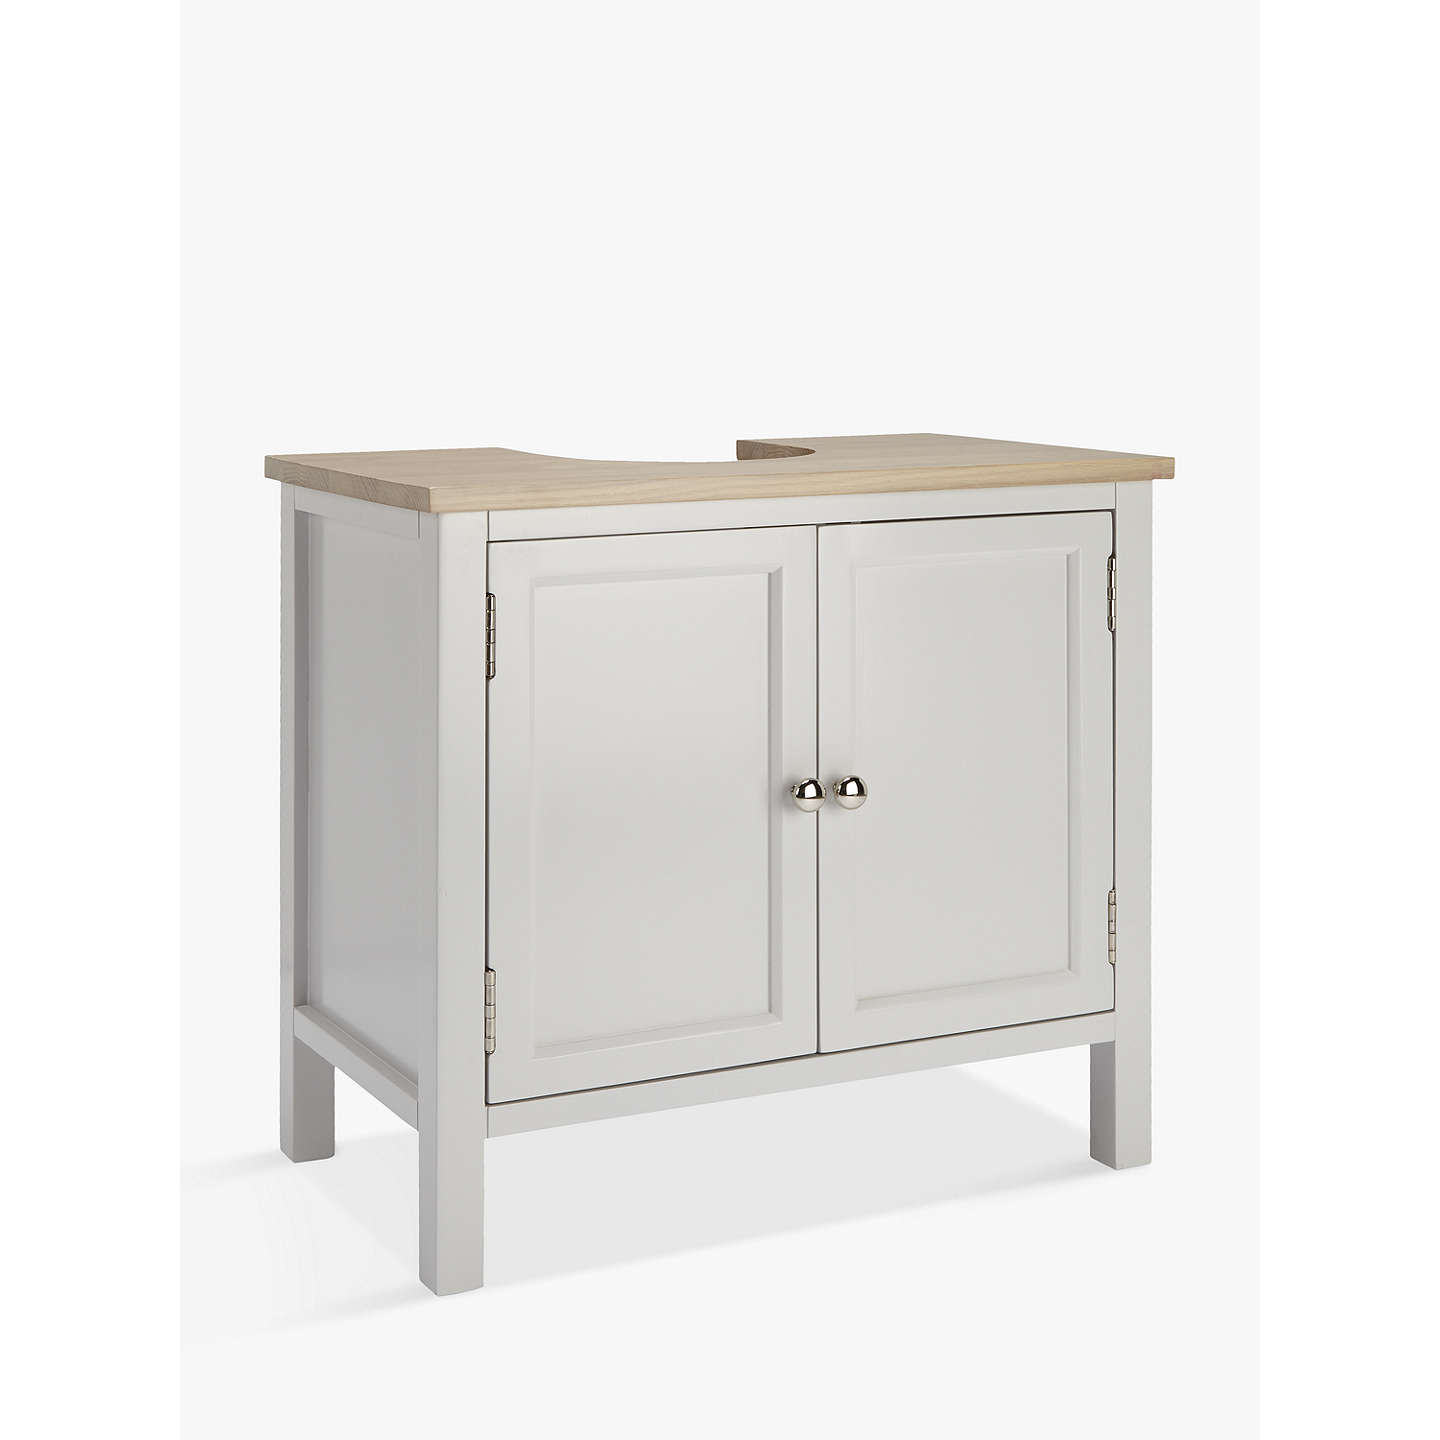 Free Standing Kitchen Cabinets John Lewis: Croft Collection Blakeney Under Sink Unit, Light Silver At